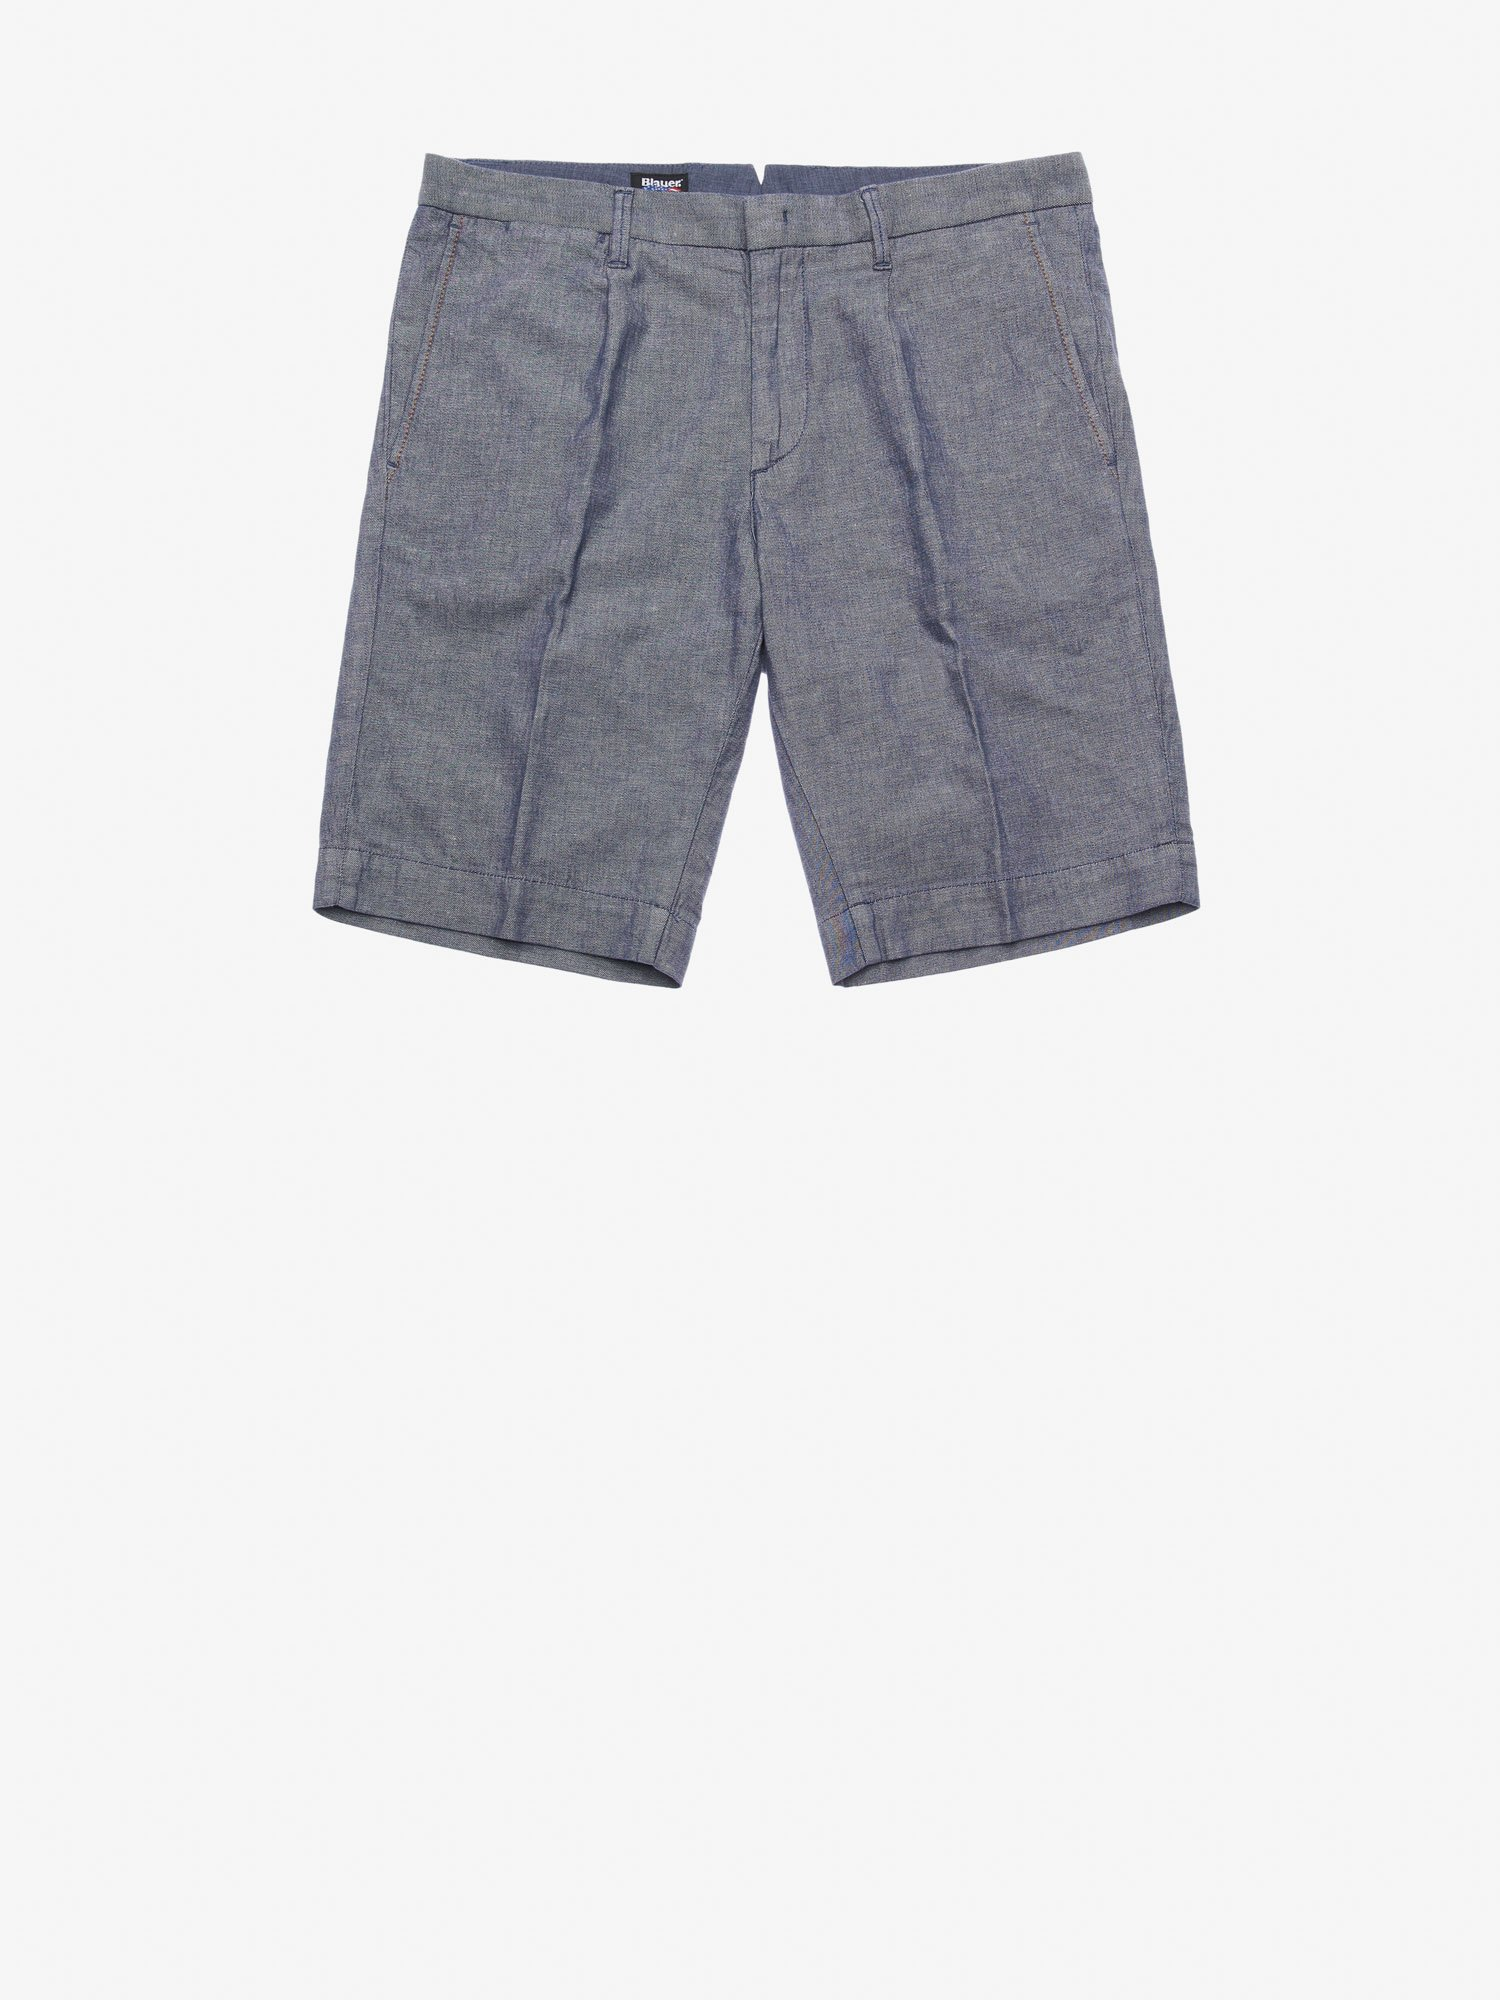 Blauer - STRETCH COTTON AND LINEN BERMUDA SHORTS - blue - Blauer